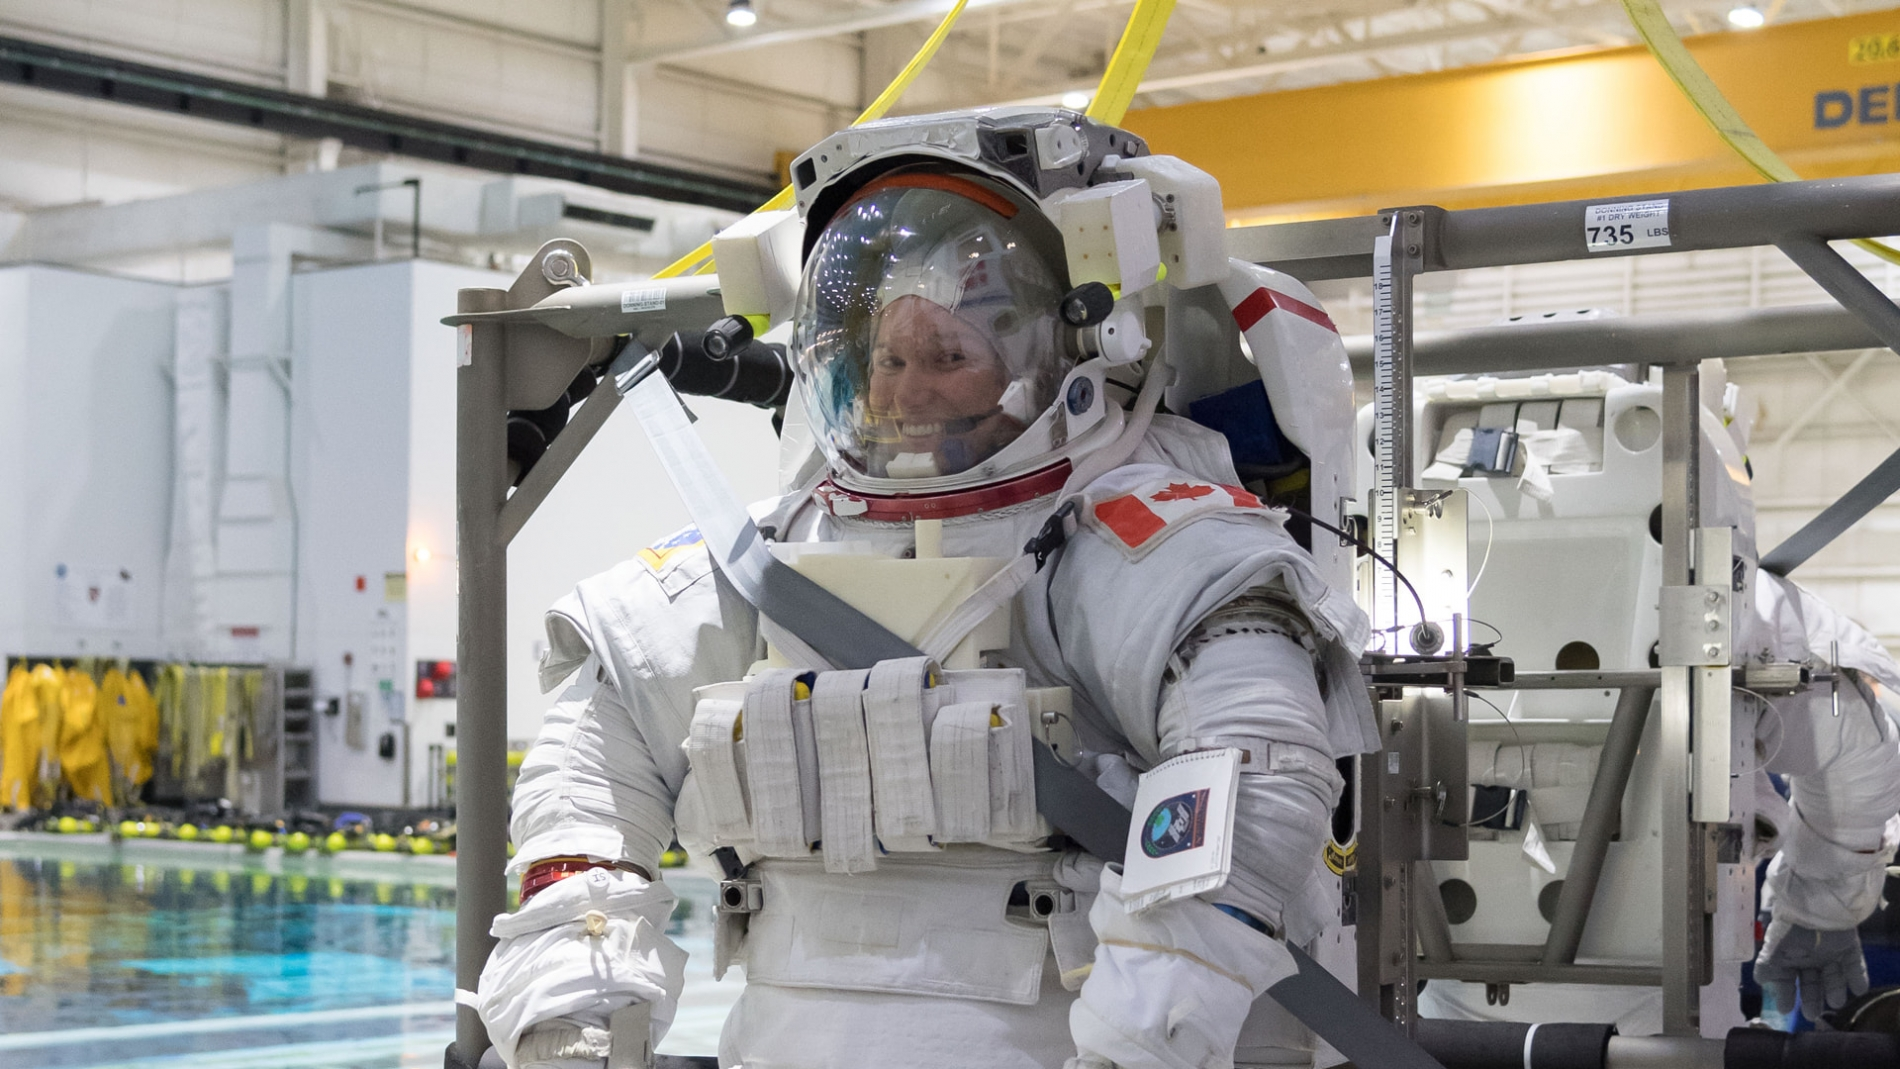 Photo of Jenni Sidey-Gibbons in her astronaut suit